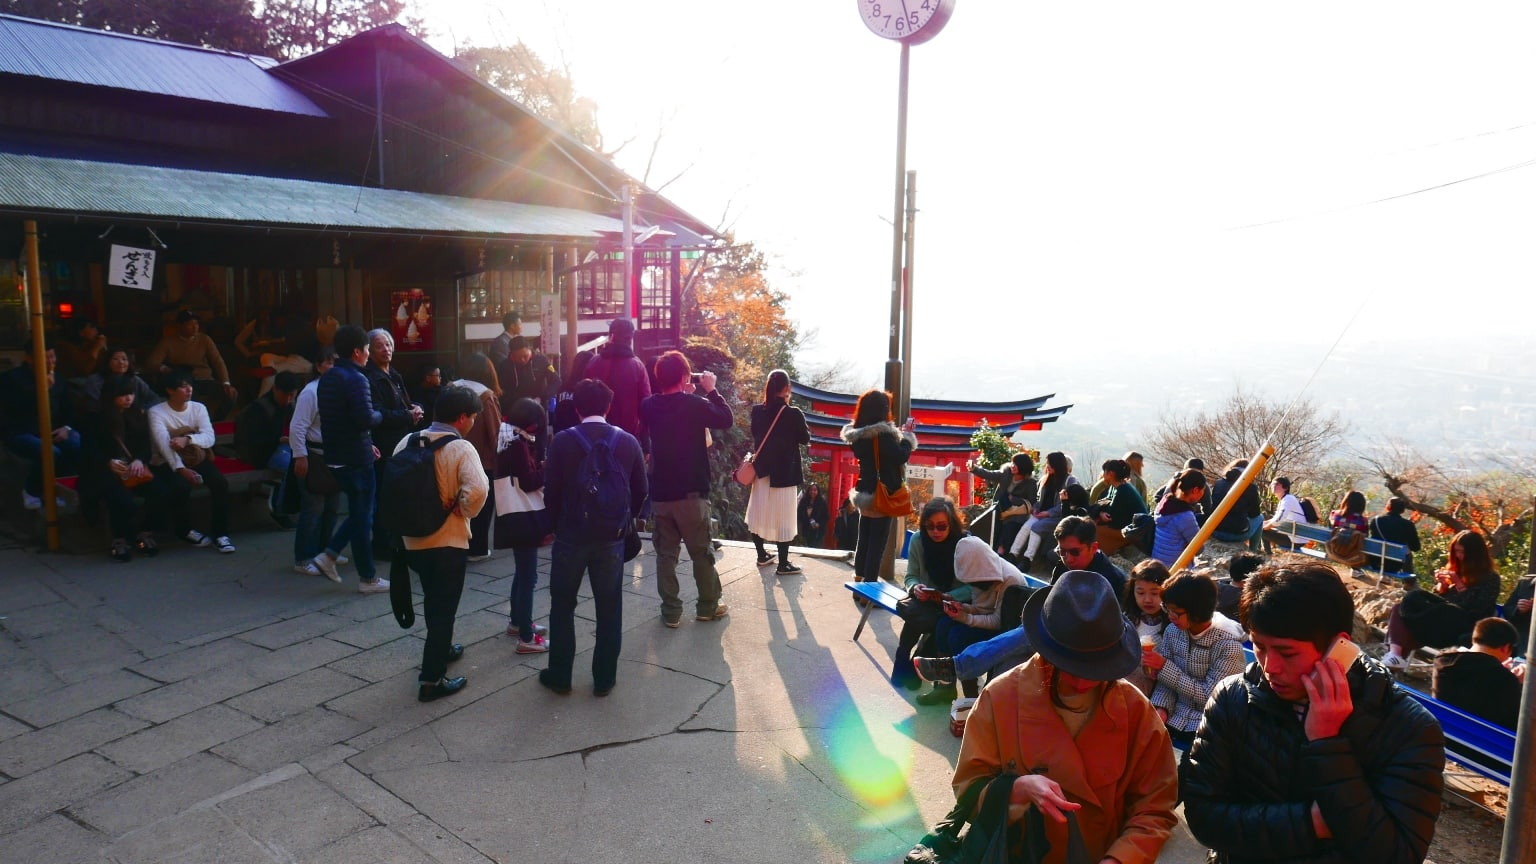 Trekkers at the summit of Mt Inari enjoying a snack and waiting for sunset